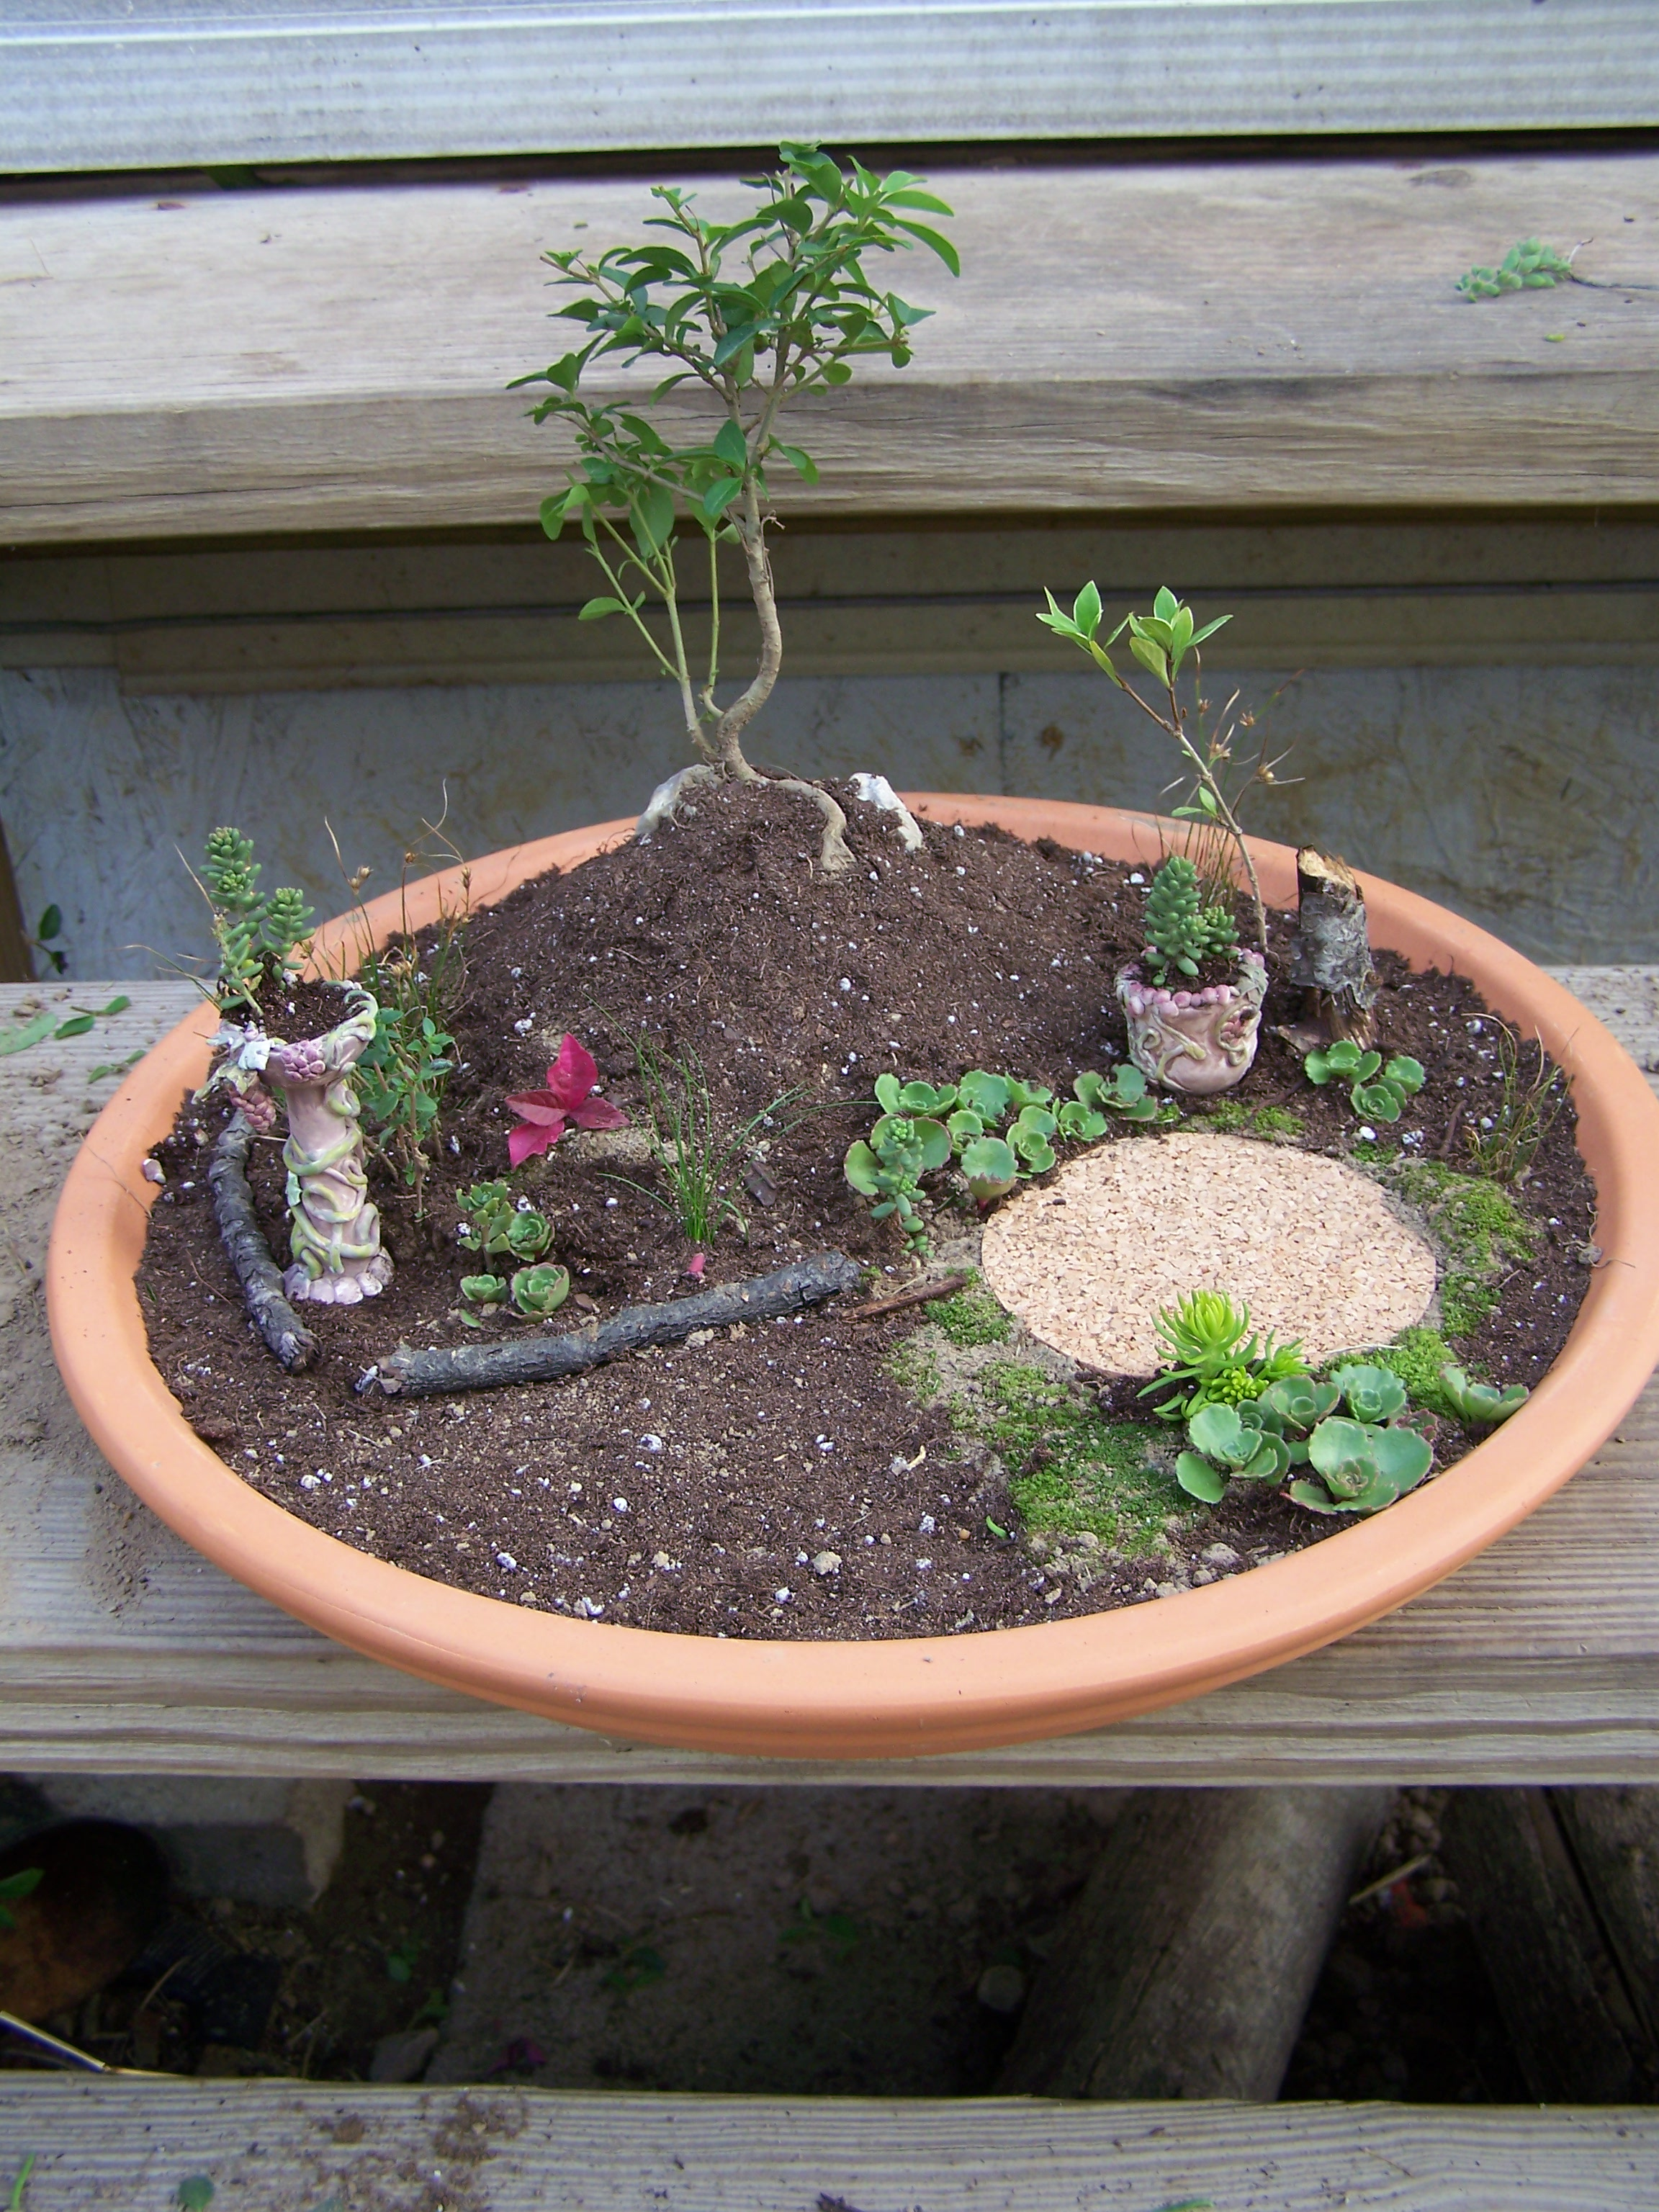 Marvelous Unfinished Miniature Fairy Garden How To Create A Miniature Fairy Garden Frugal Gardening Momma Miniature Fairy Garden Trees Miniature Fairy Garden Plants garden Miniature Fairy Garden